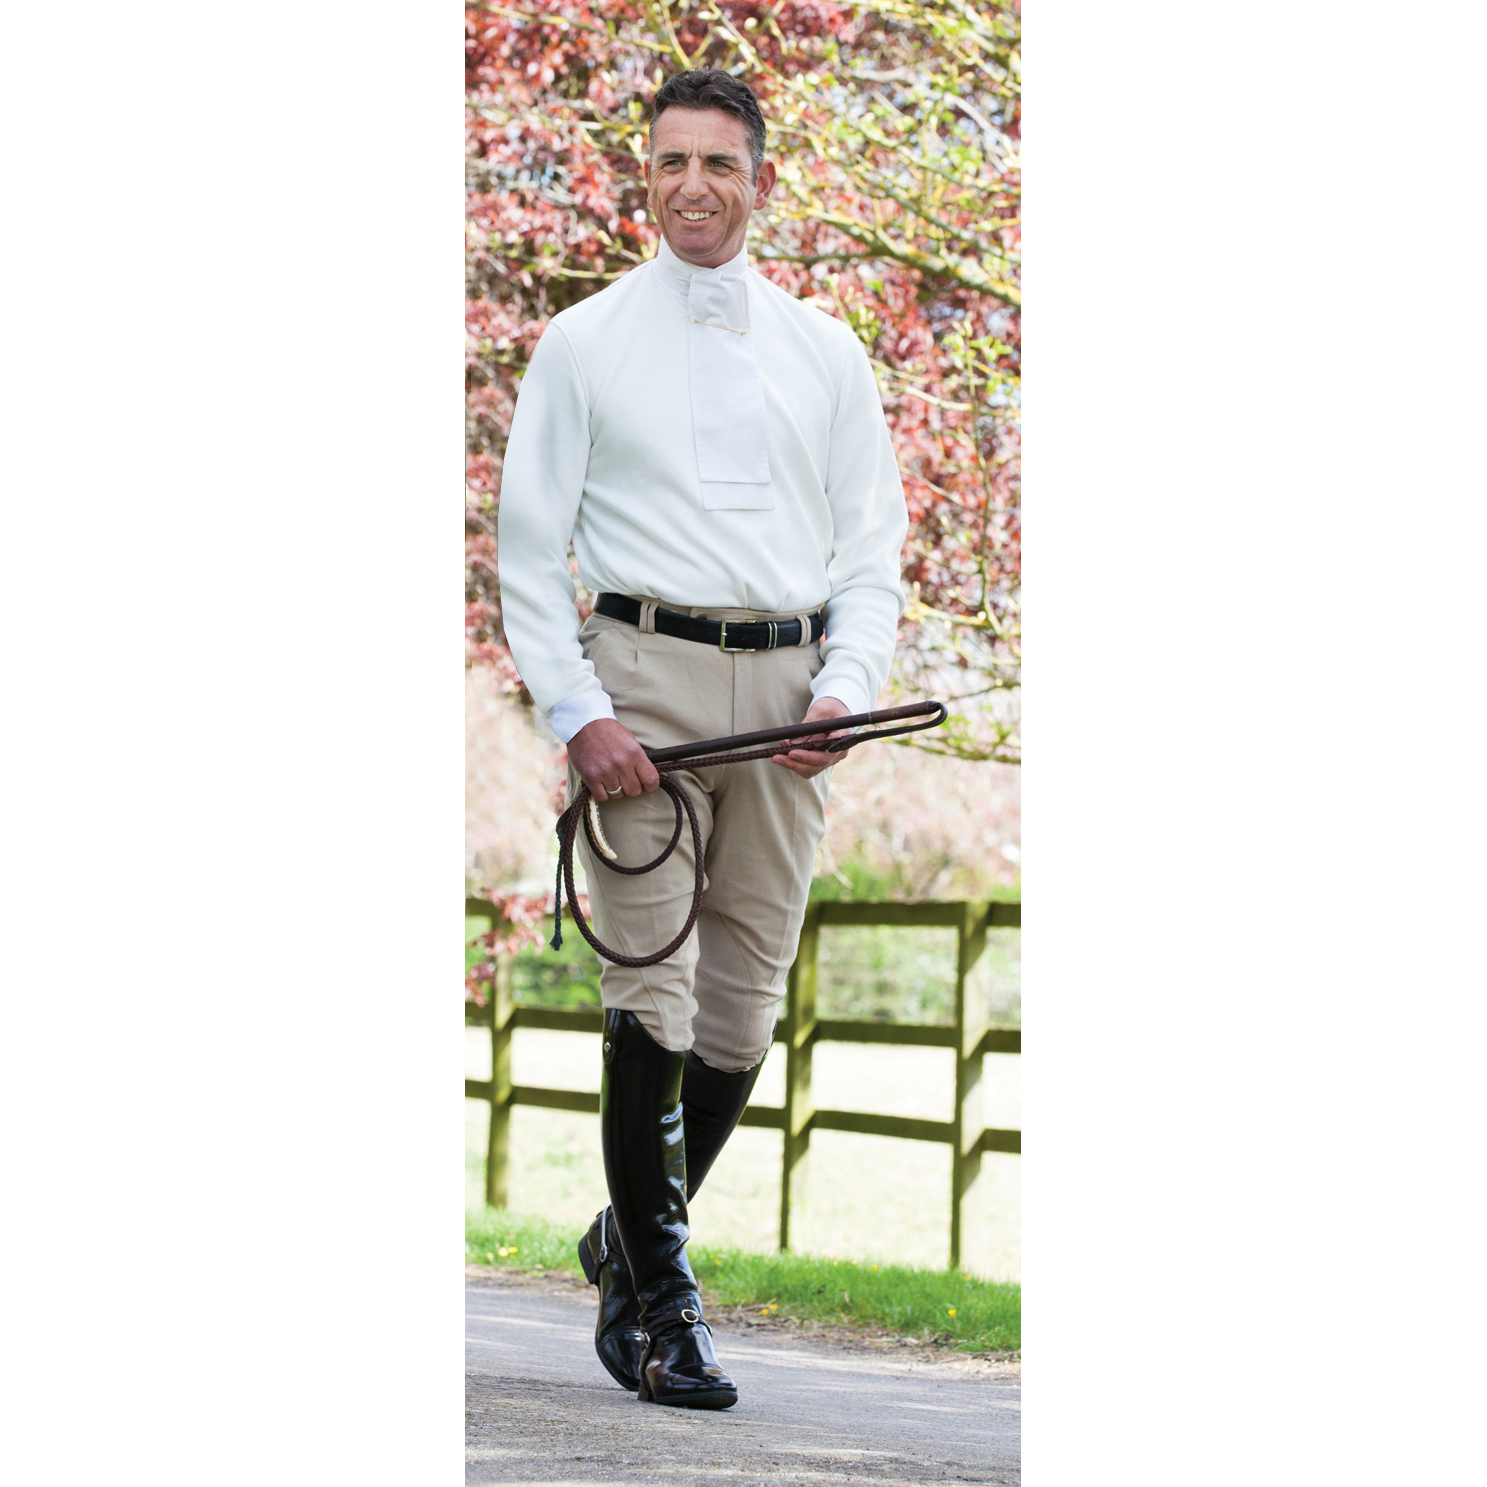 Equetech Mens Foxhunter Hybrid Breeches  - Thomas Irving's equestrian and accessories store  Equetech Mens Foxhunter Hybrid Breeches